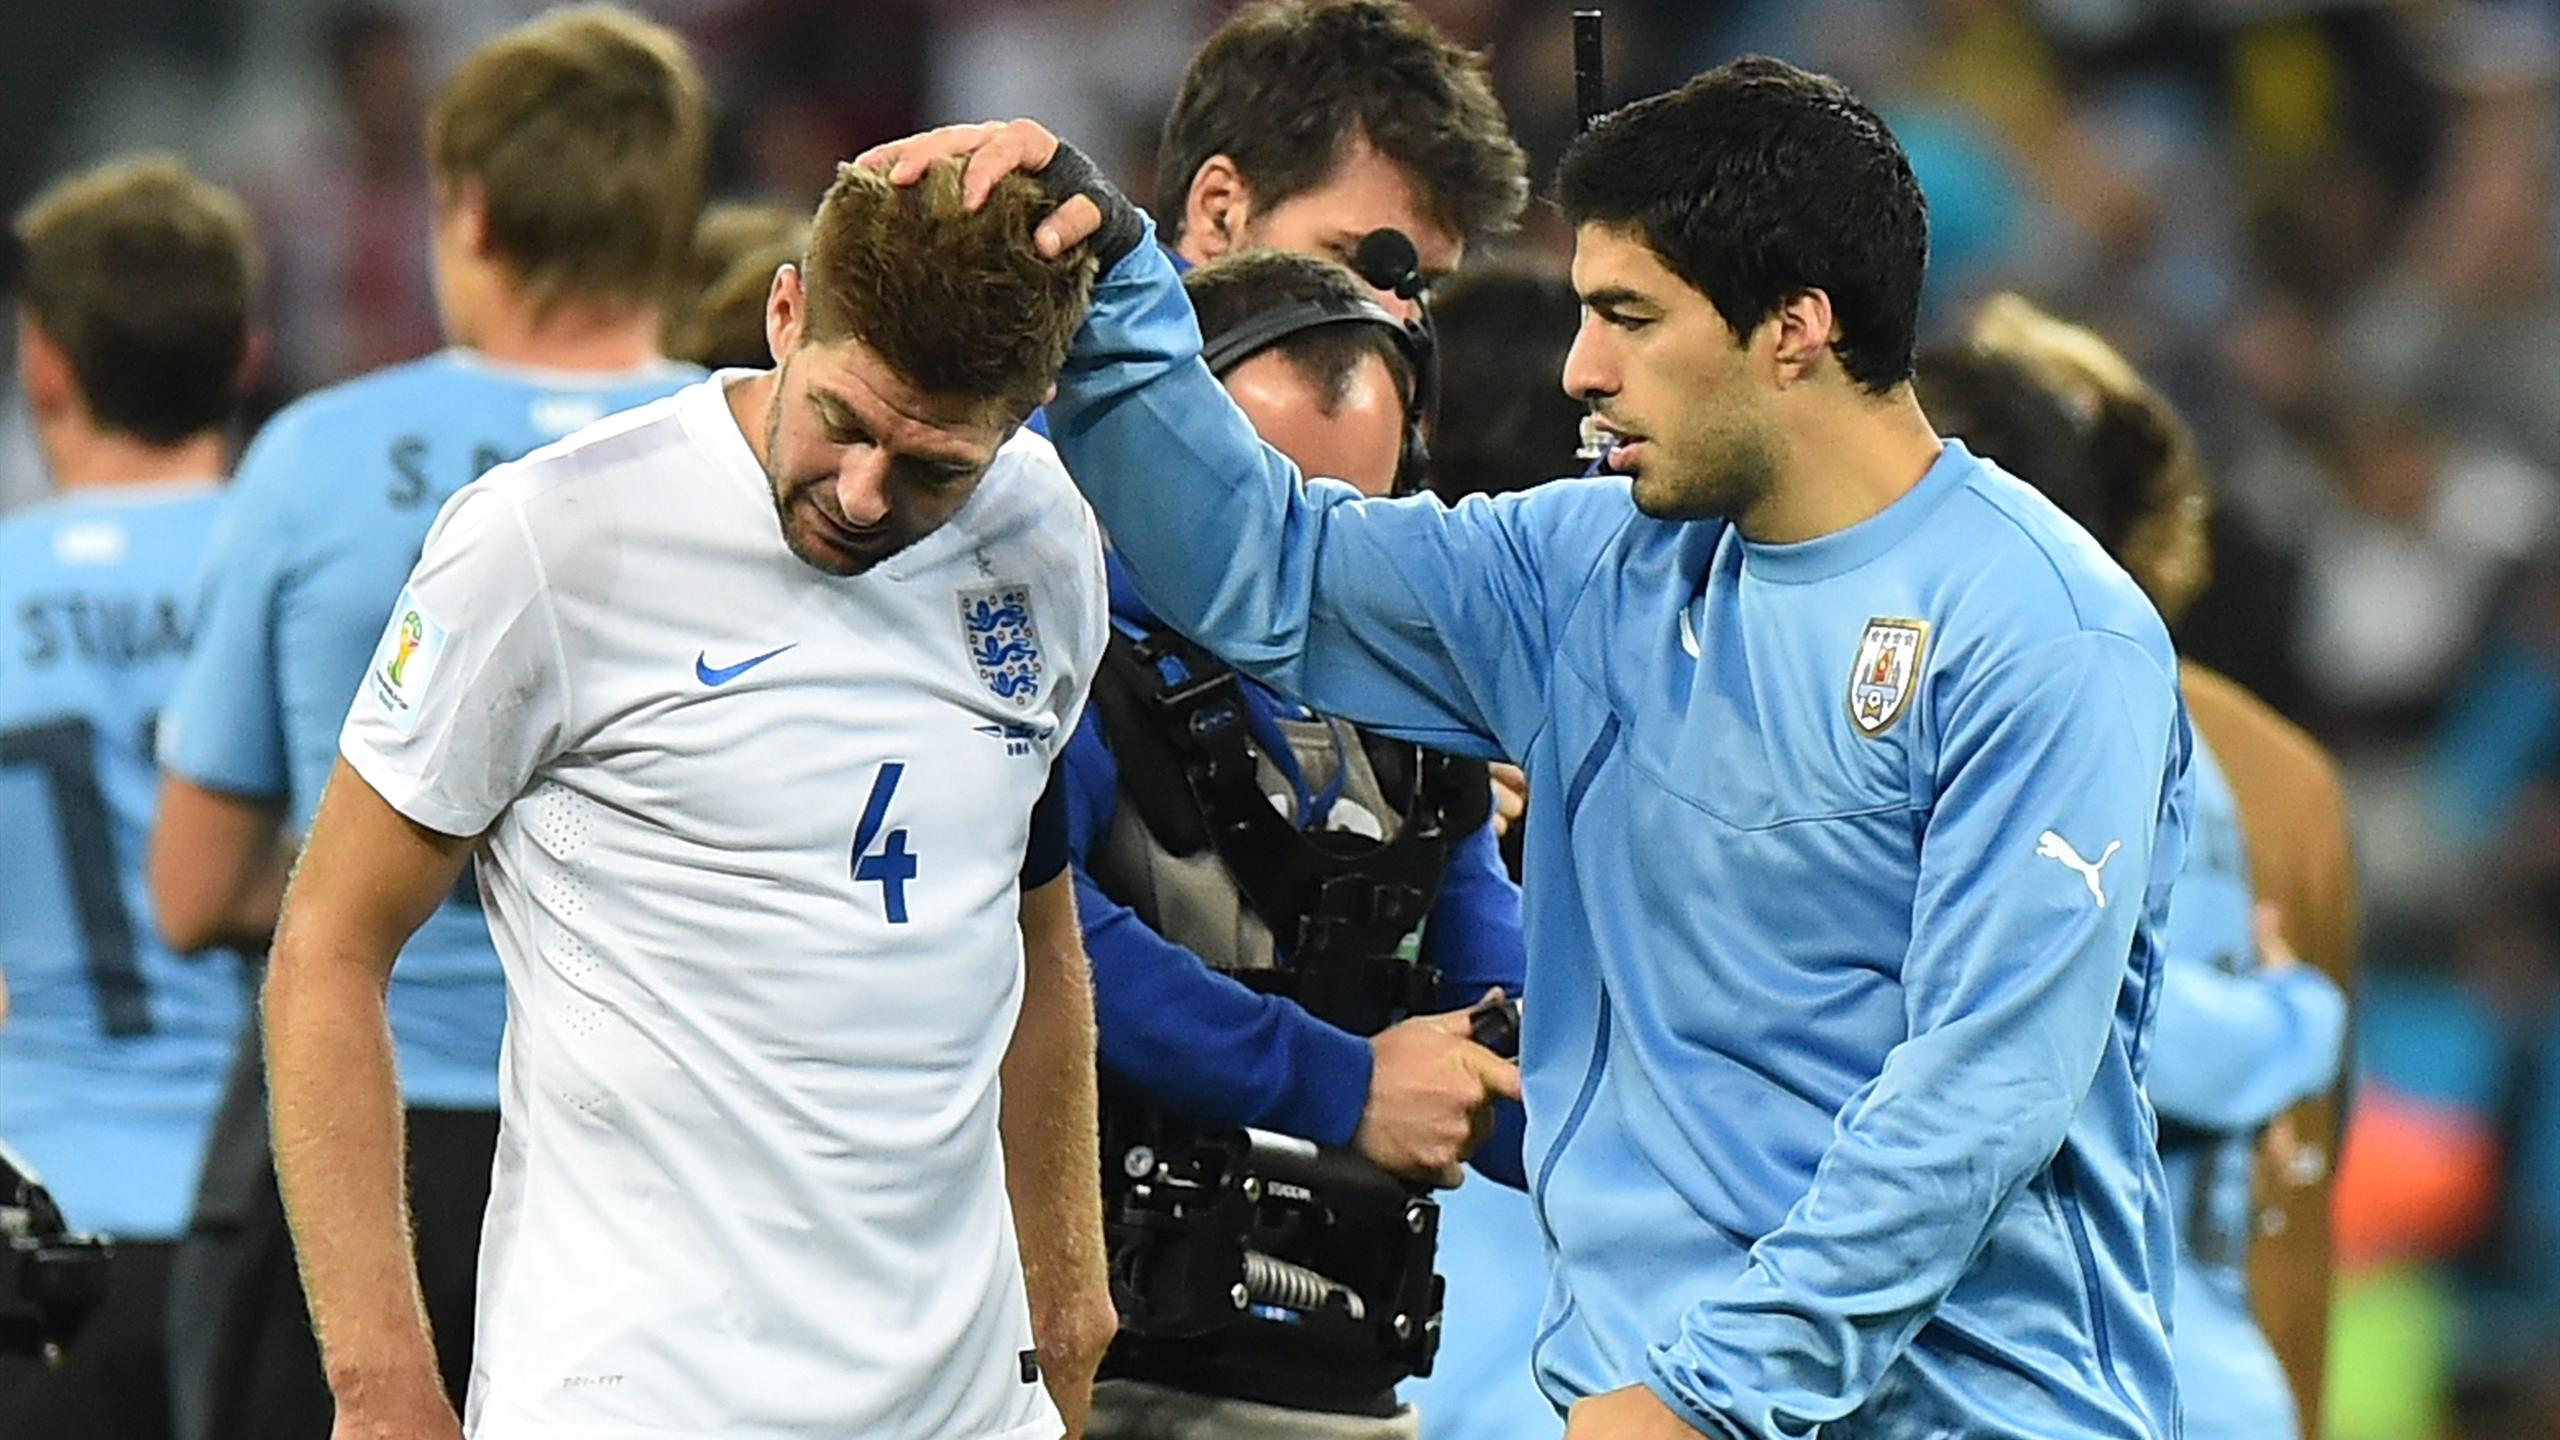 England's midfielder and captain Steven Gerrard (L) is consoled by Uruguay's forward Luis Suarez